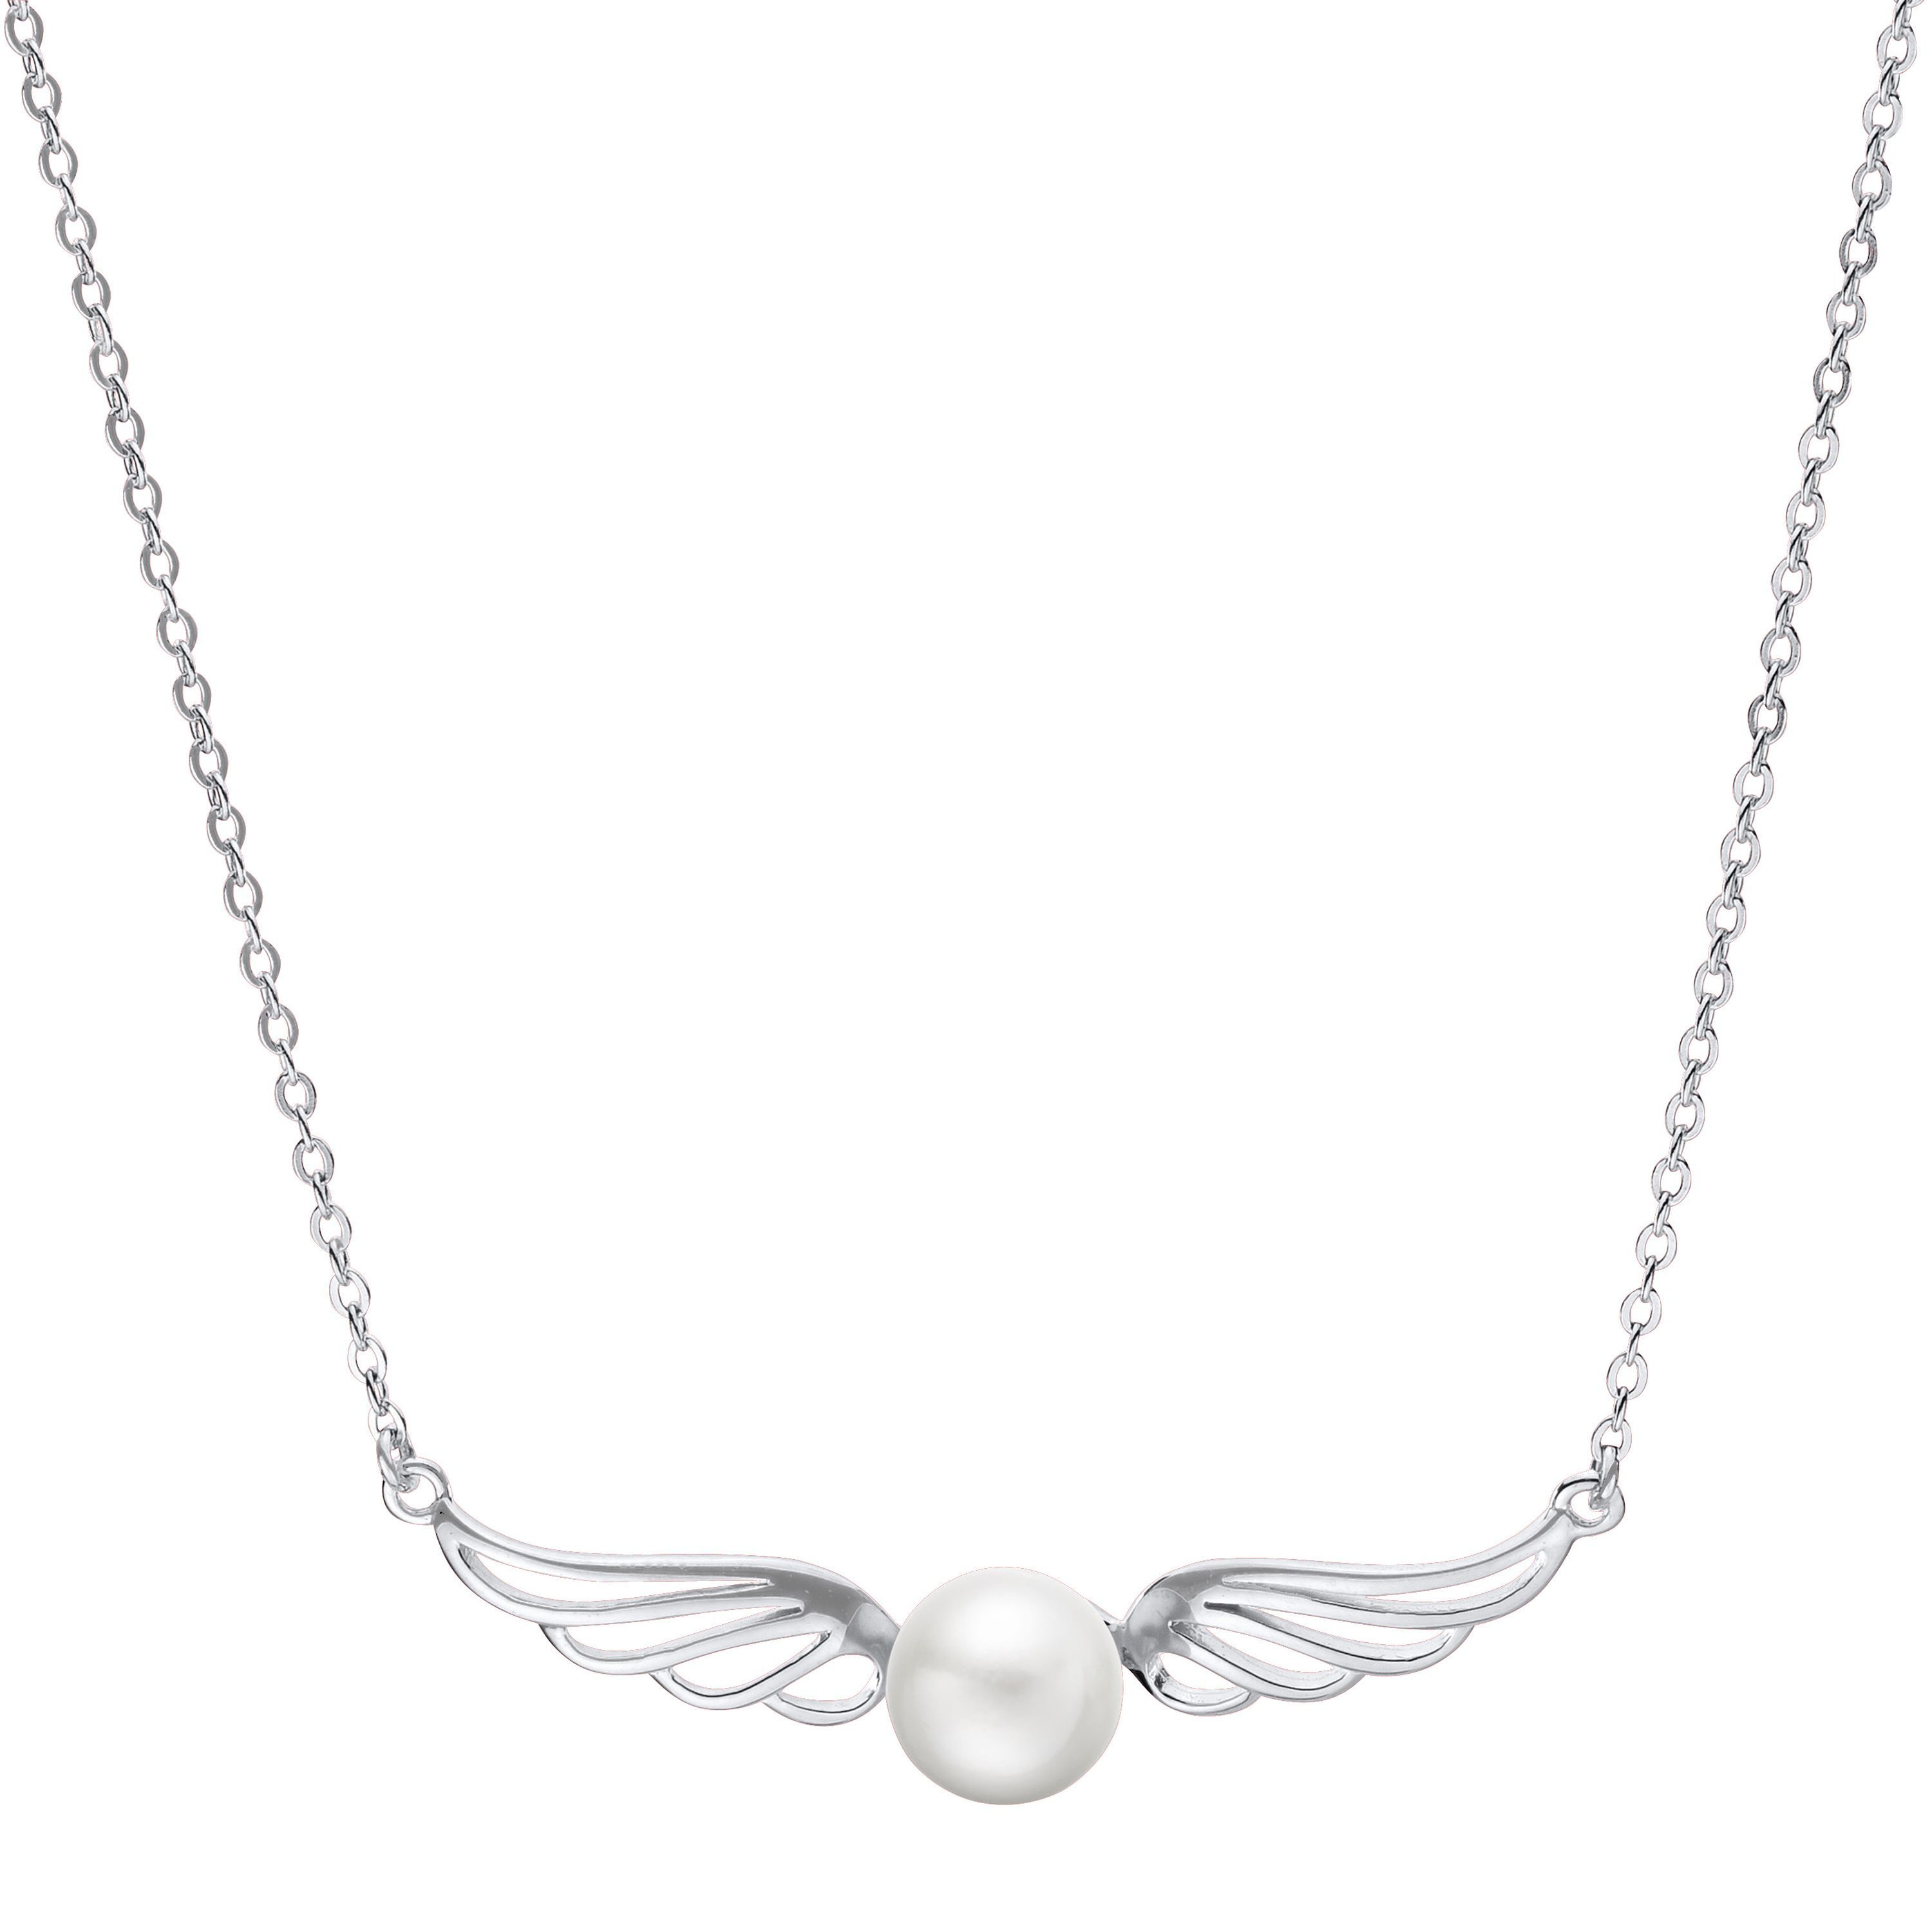 "Imperial Pearls for You Sterling Silver and Freshwater Pearl 18-inch Wings Necklace (18 SS White FWP ""Wing"" Necklace), Women's, Size: 18 Inch"